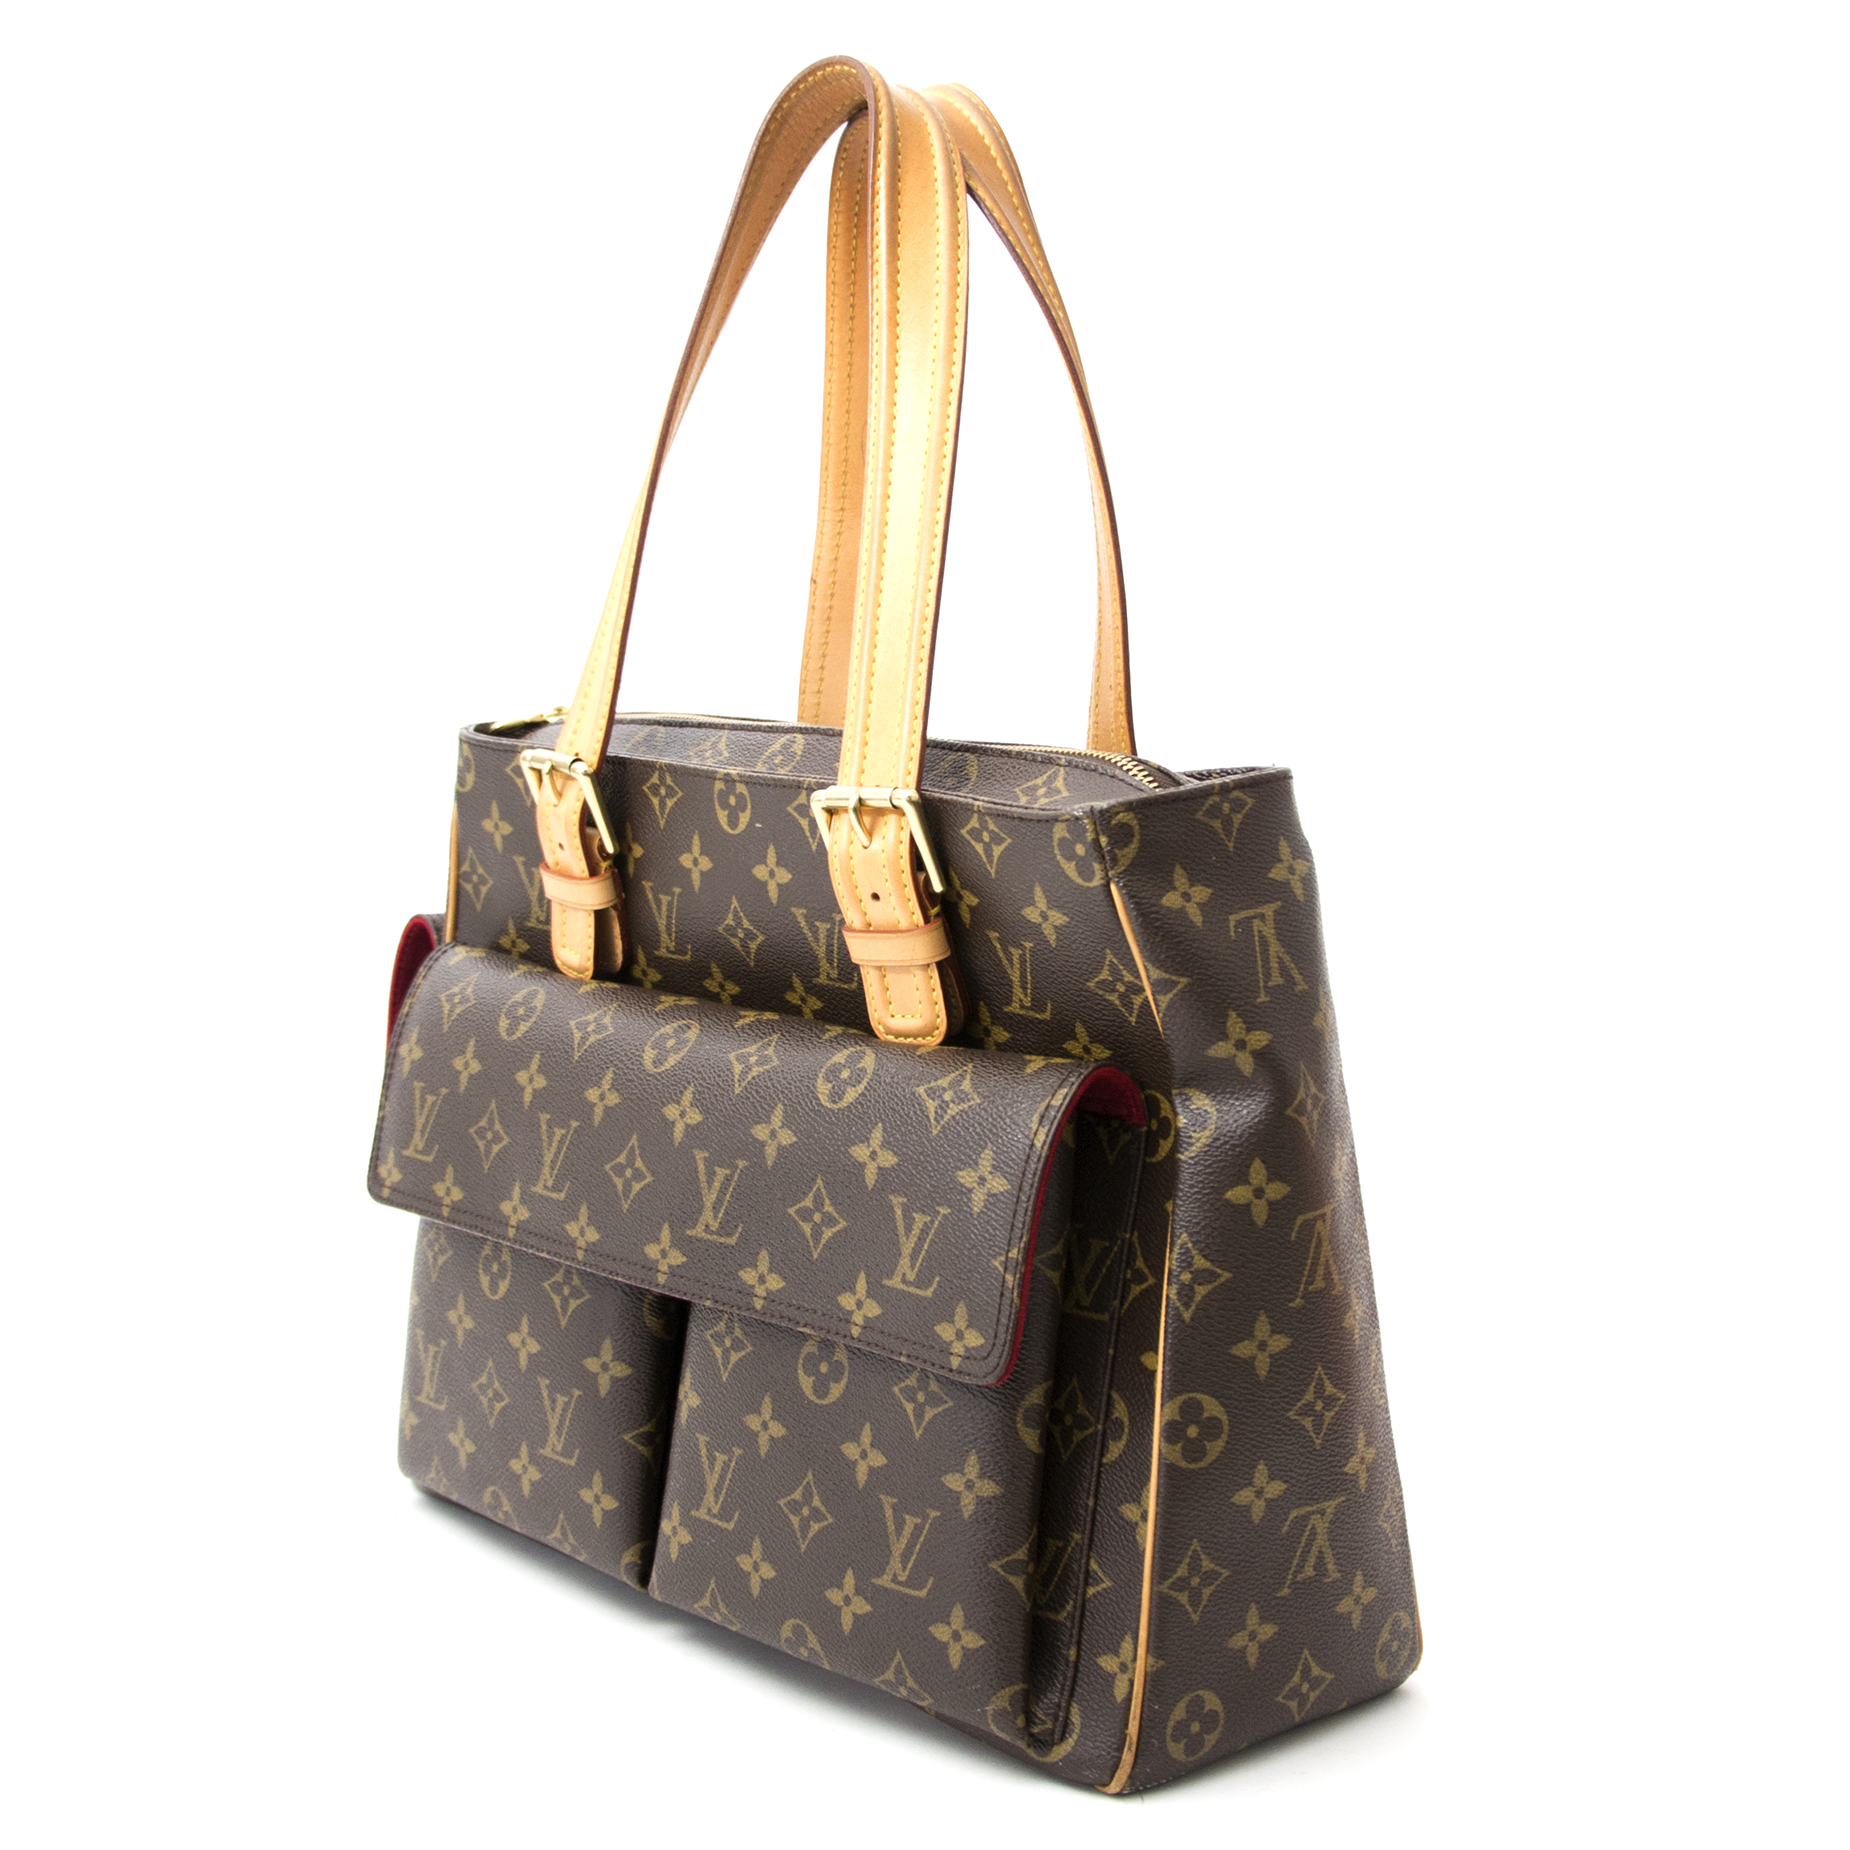 Louis Vuitton Monogram Canvas Multipli Cite Bag achat et vendre chez Labellov